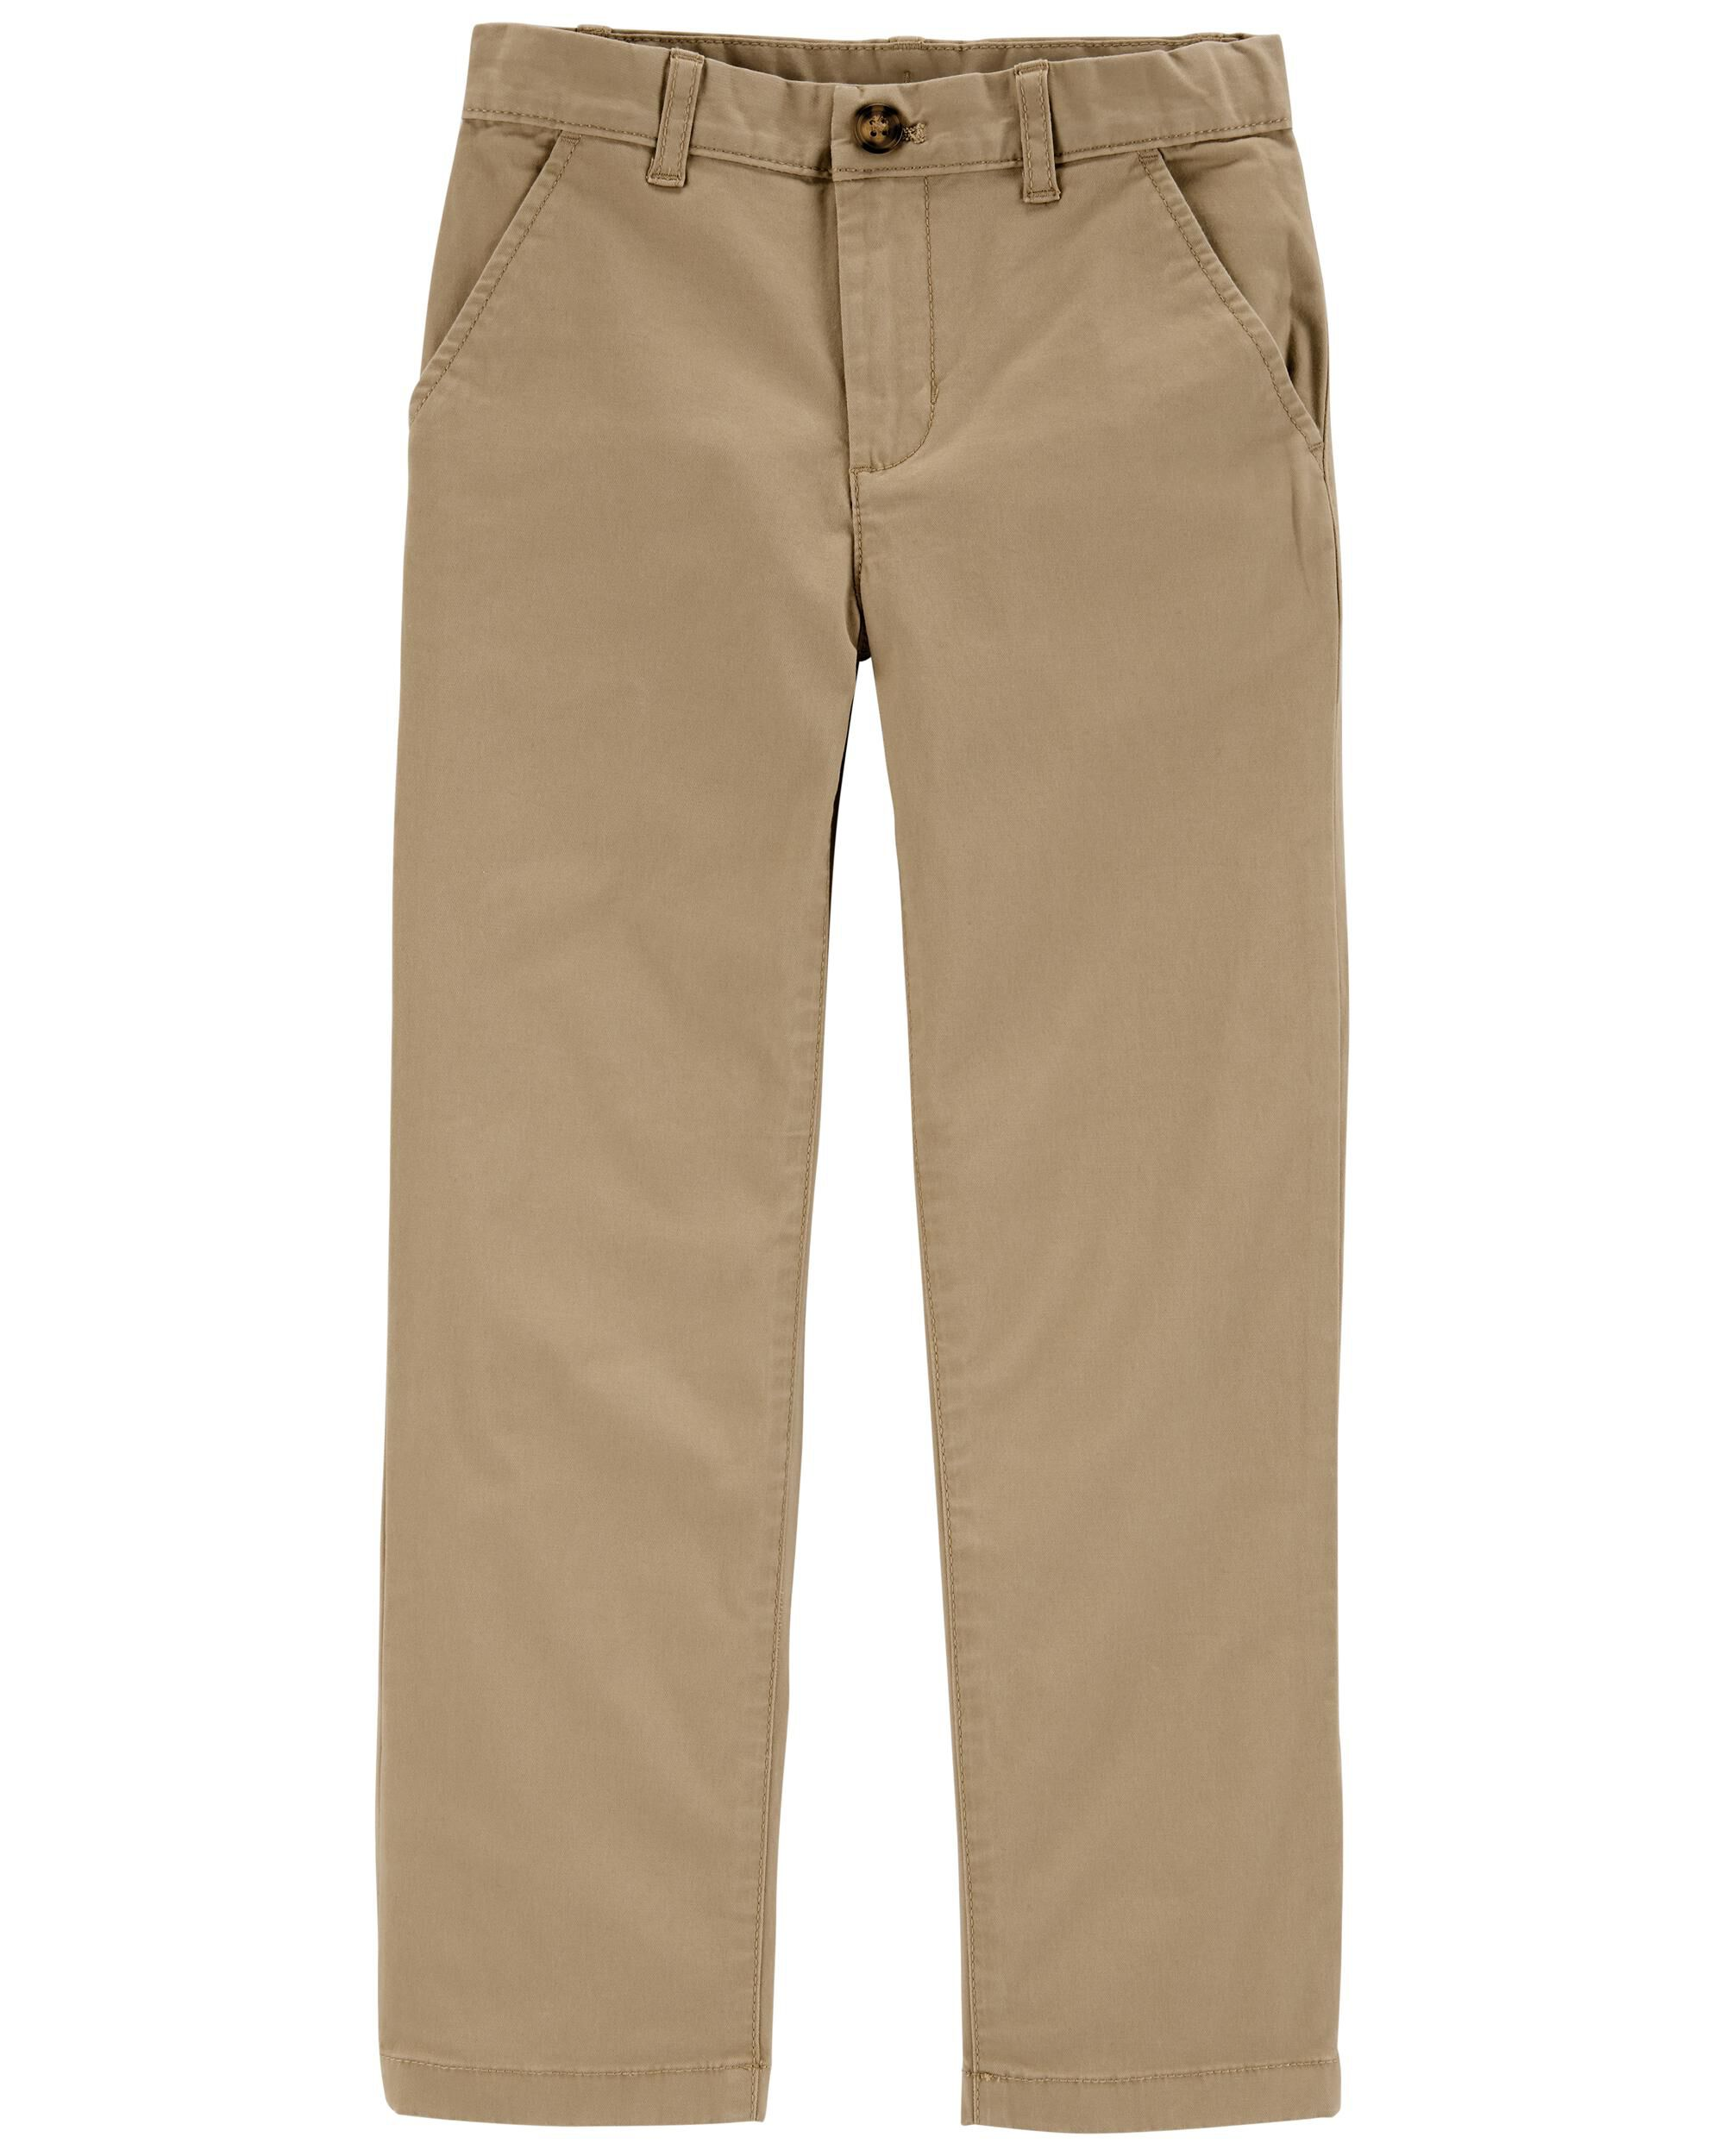 Carters Flat-Front Chino Pants